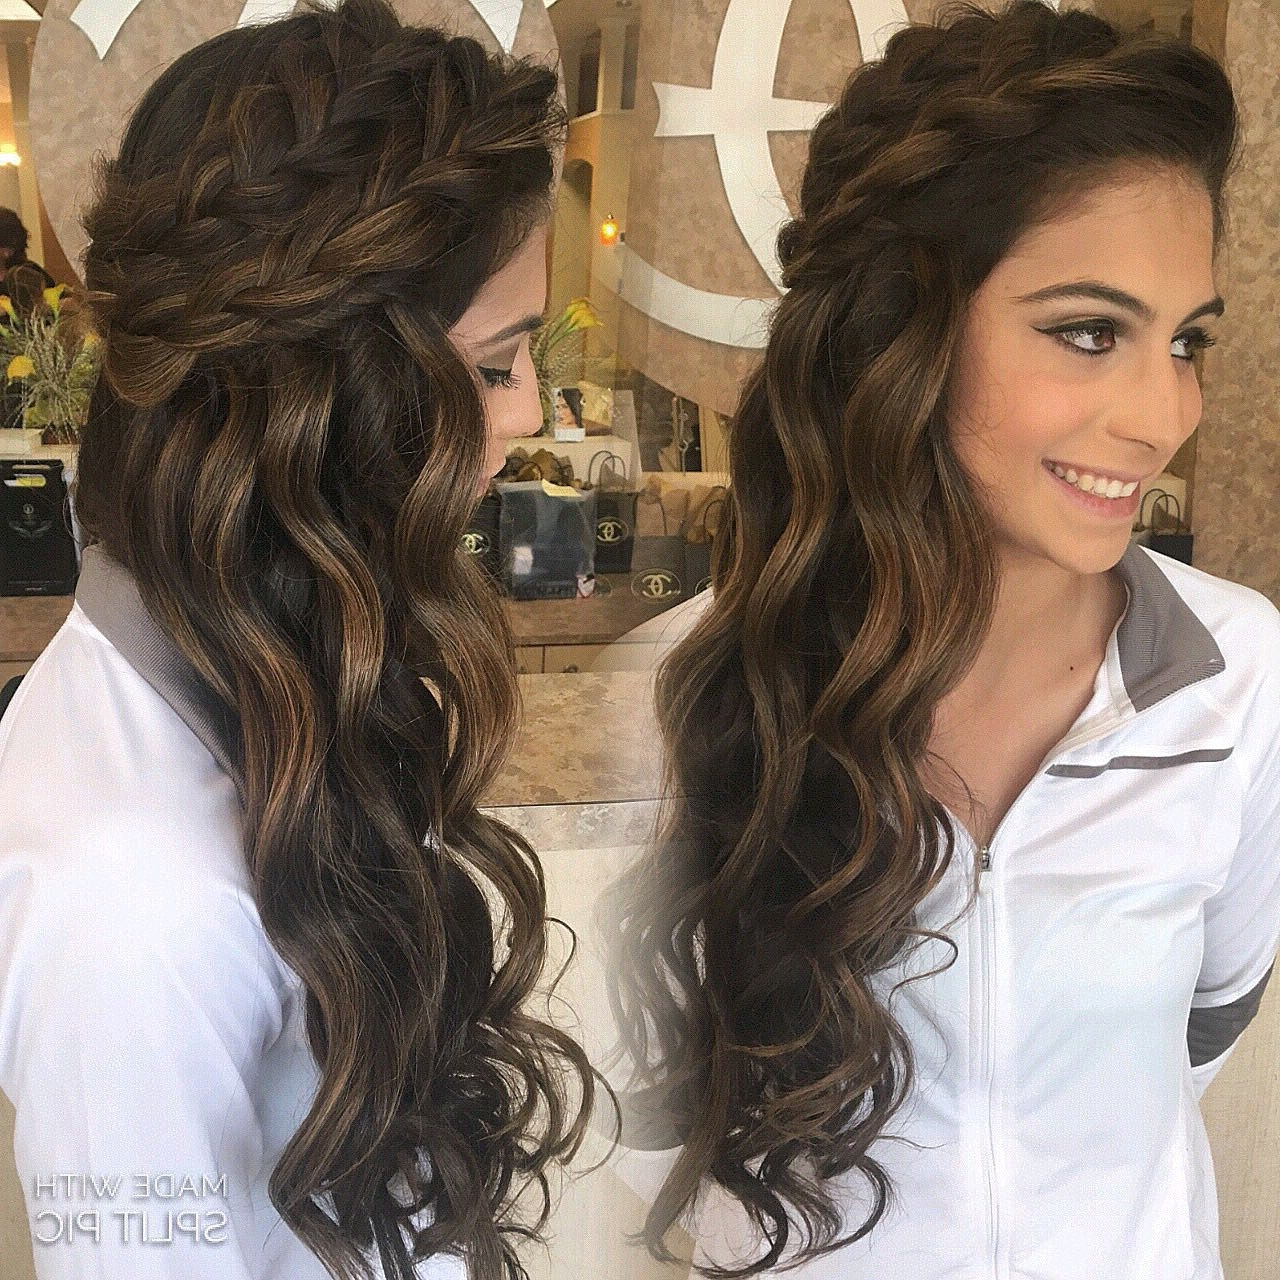 Most Popular Wedding Hairstyles: 15 Best Of Big Curls Wedding Hairstyles